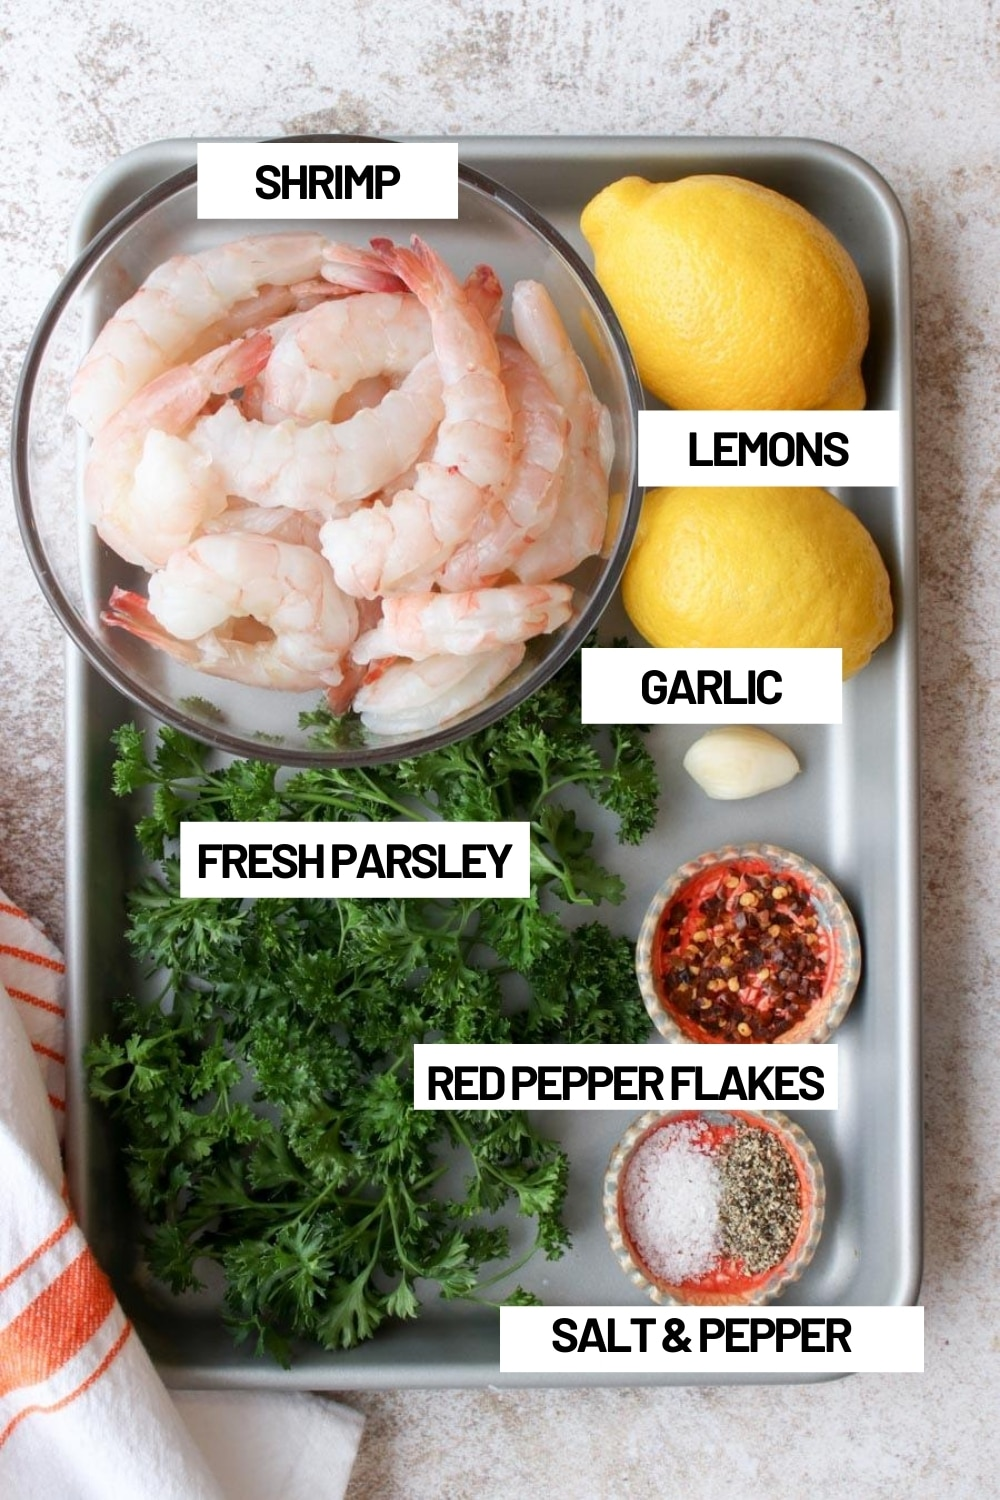 Cookie sheet with all of the ingredients needed to make grilled shrimp skewers